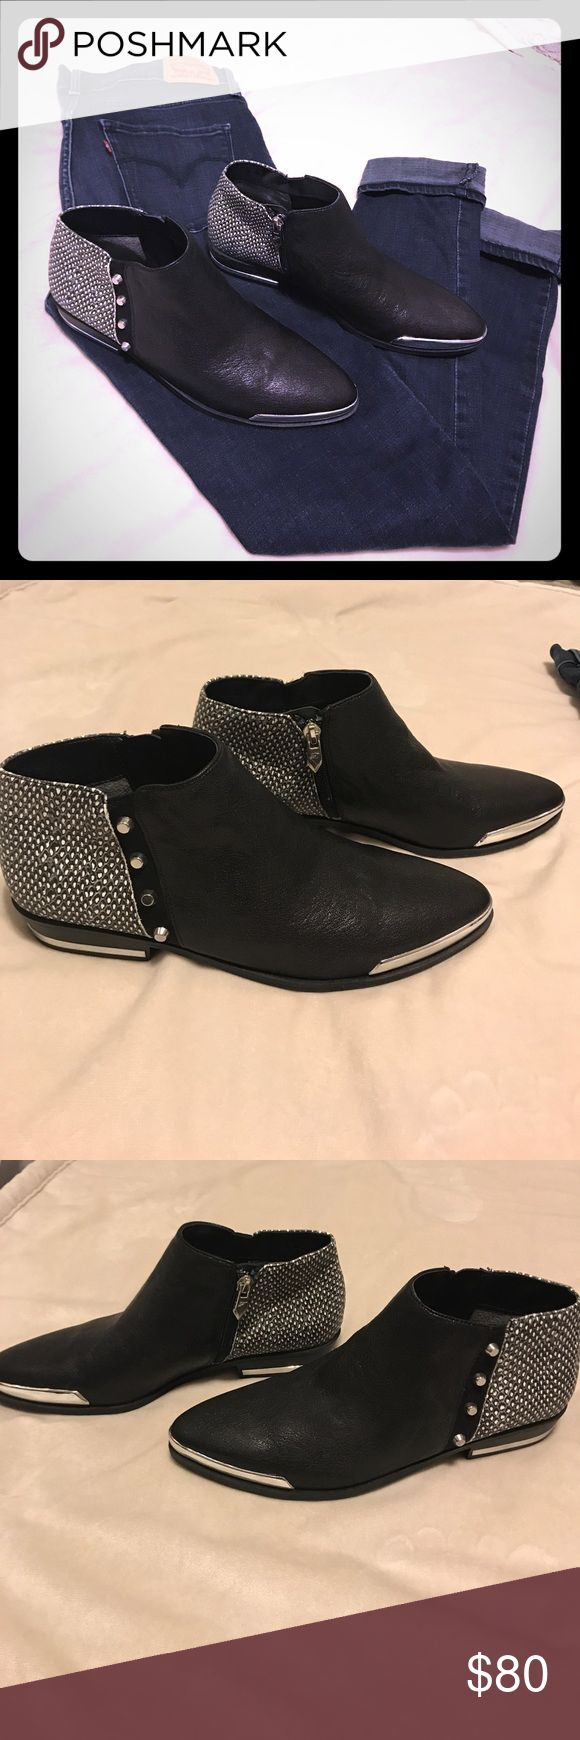 NWOT Fergie Ankle Boots! NWOT These pointed toe, leather ankle boots add the perfect amount of edge to your outfit! ✨will accept reasonable offers✨ Fergie Shoes Ankle Boots & Booties